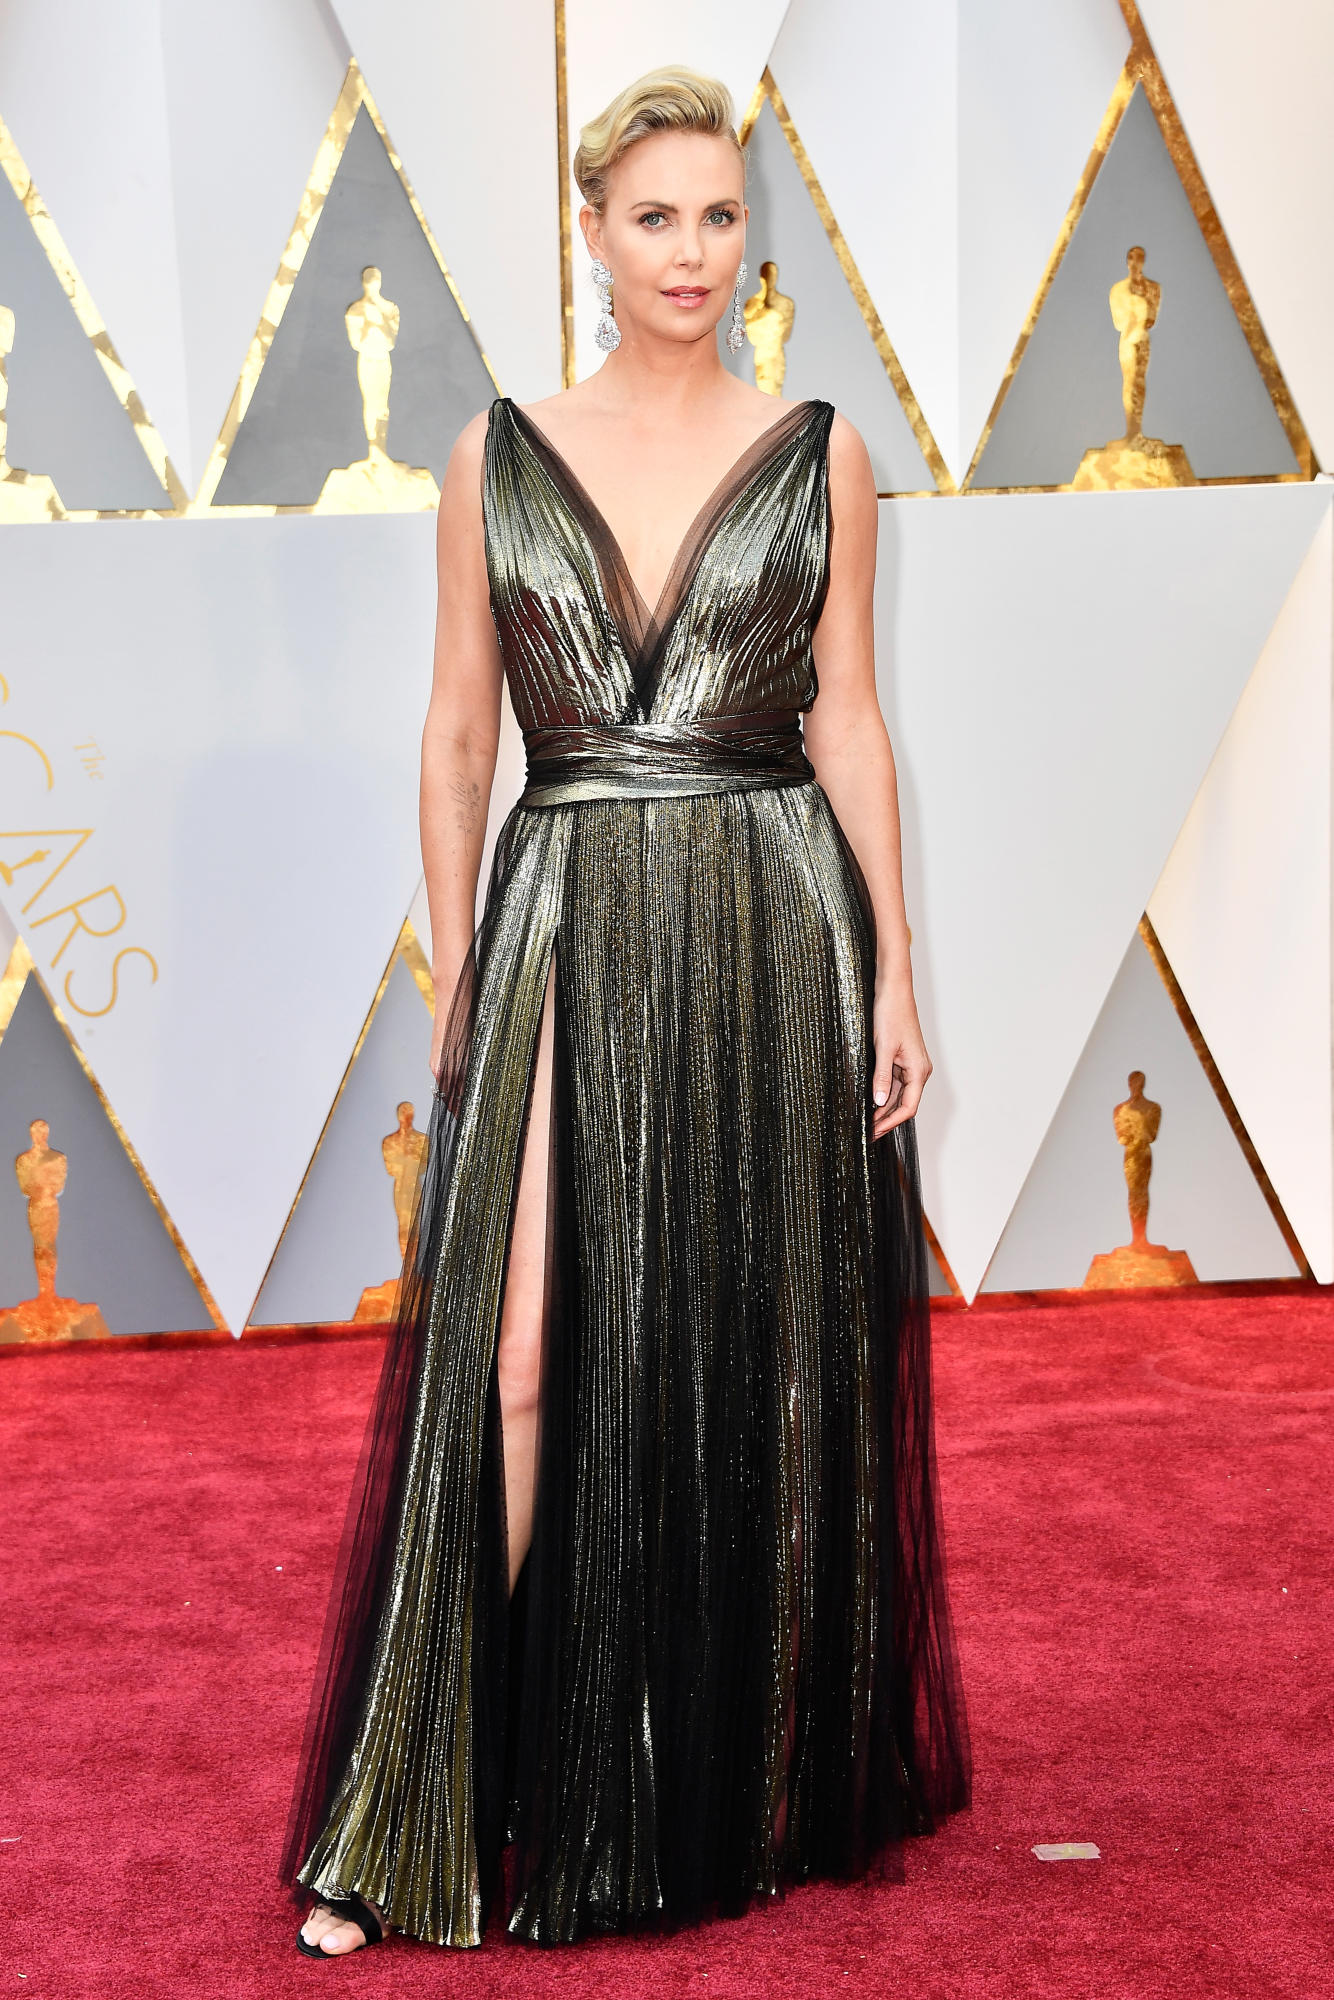 Not my favorite Charlize look, but still stunning. Charlize Theron in Armani Privé